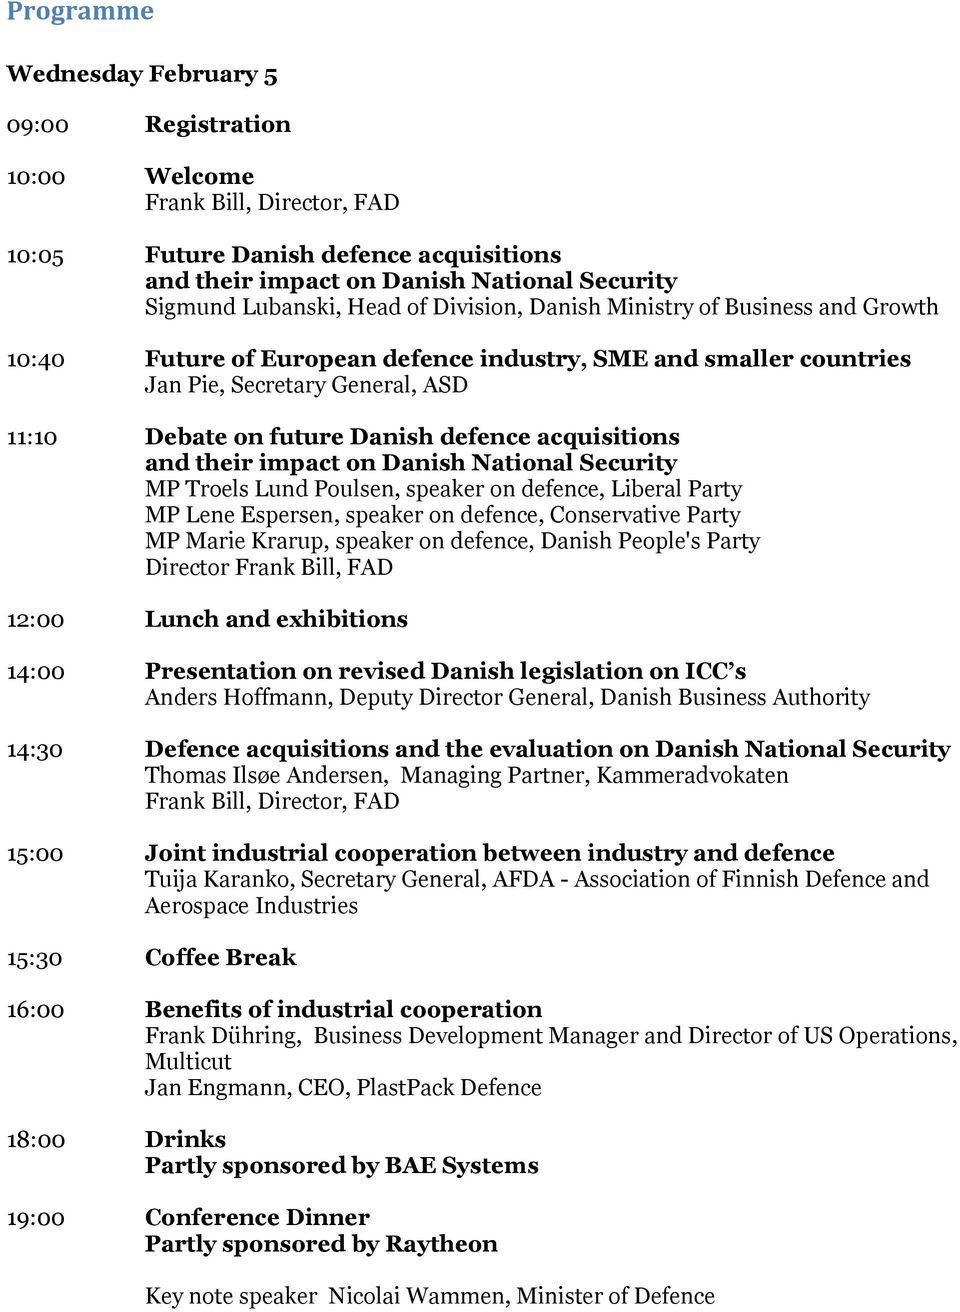 acquisitions and their impact on Danish National Security MP Troels Lund Poulsen, speaker on defence, Liberal Party MP Lene Espersen, speaker on defence, Conservative Party MP Marie Krarup, speaker